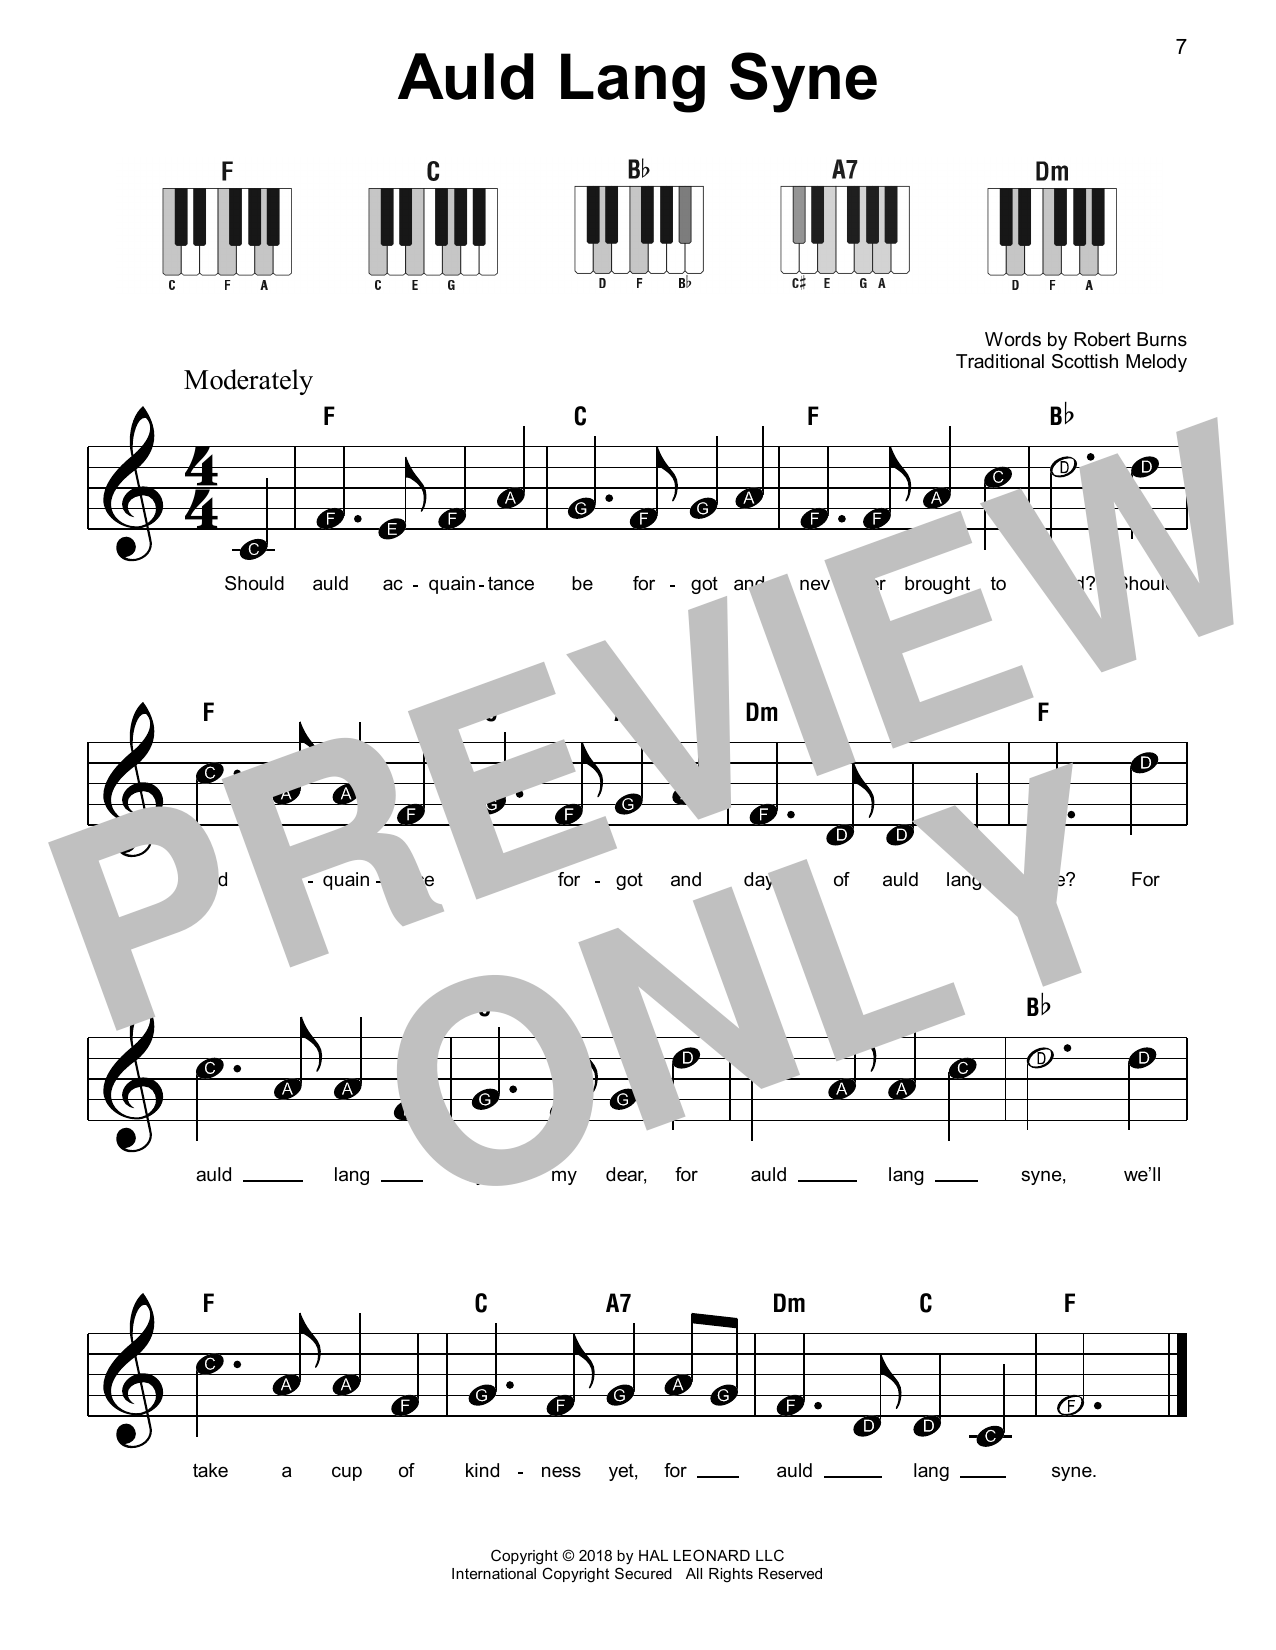 photograph relating to Auld Lang Syne Lyrics Printable named Auld Lang Syne through Conventional Piano, Vocal Guitar (Straight-Hand Melody) Electronic Sheet New music